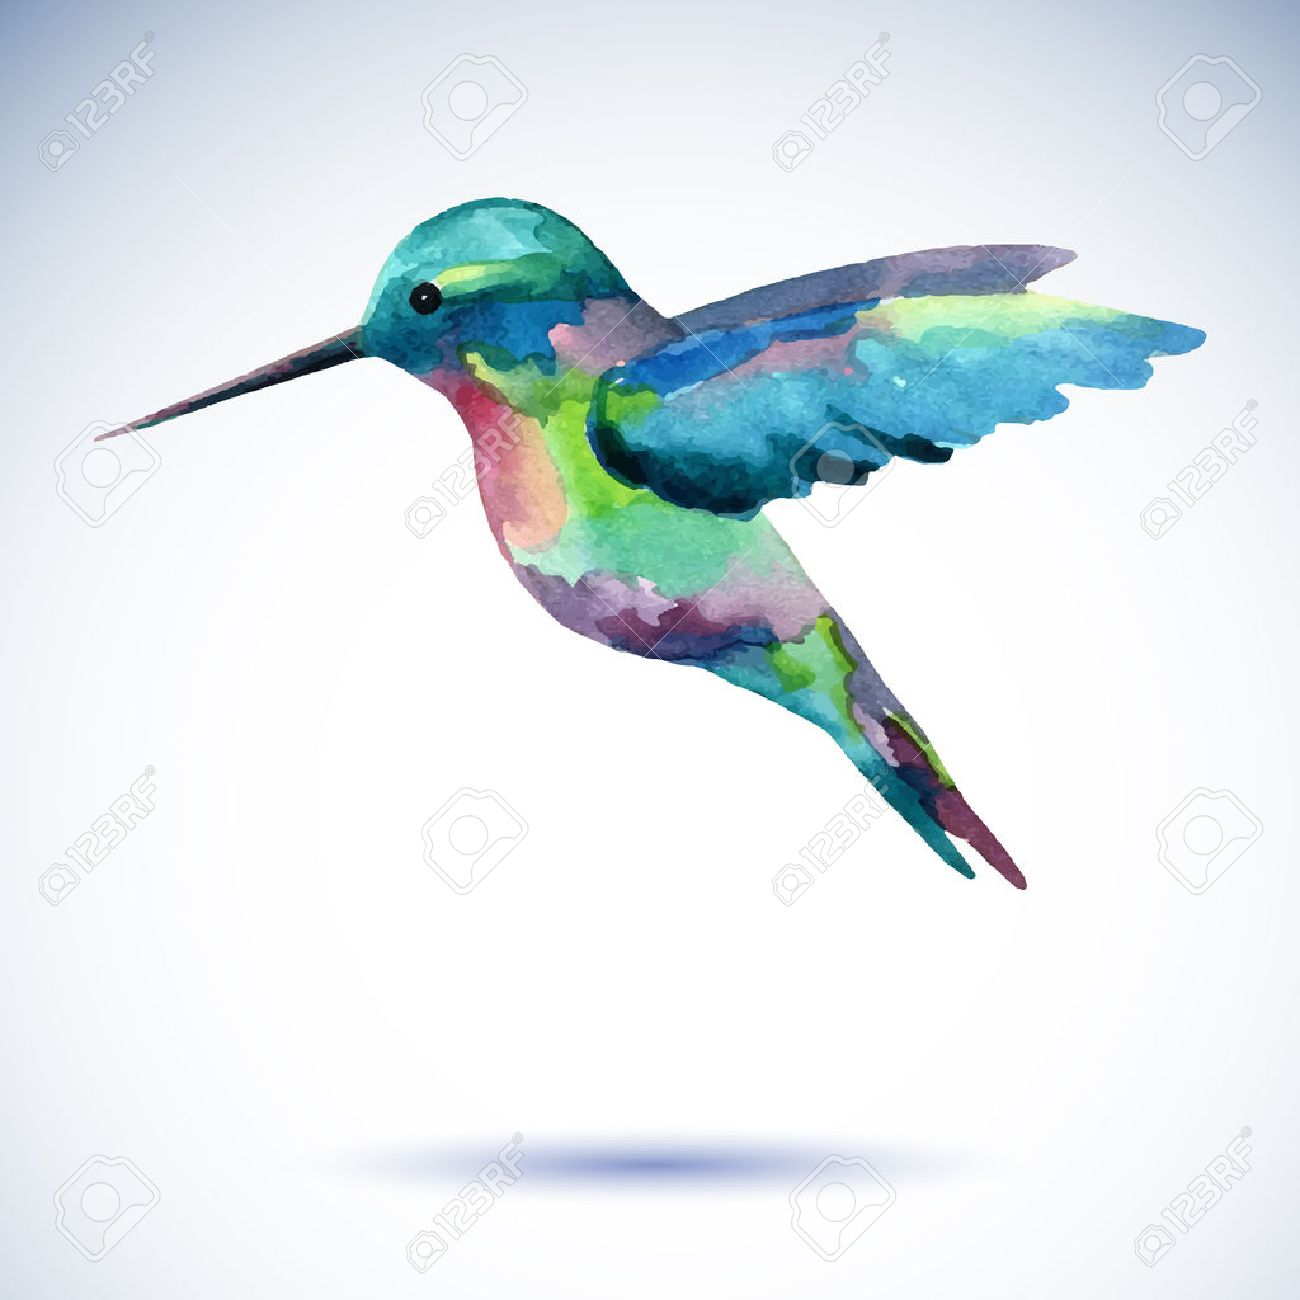 Hummingbird watercolor painting bird on the white background. Watercolor illustration. - 58409658